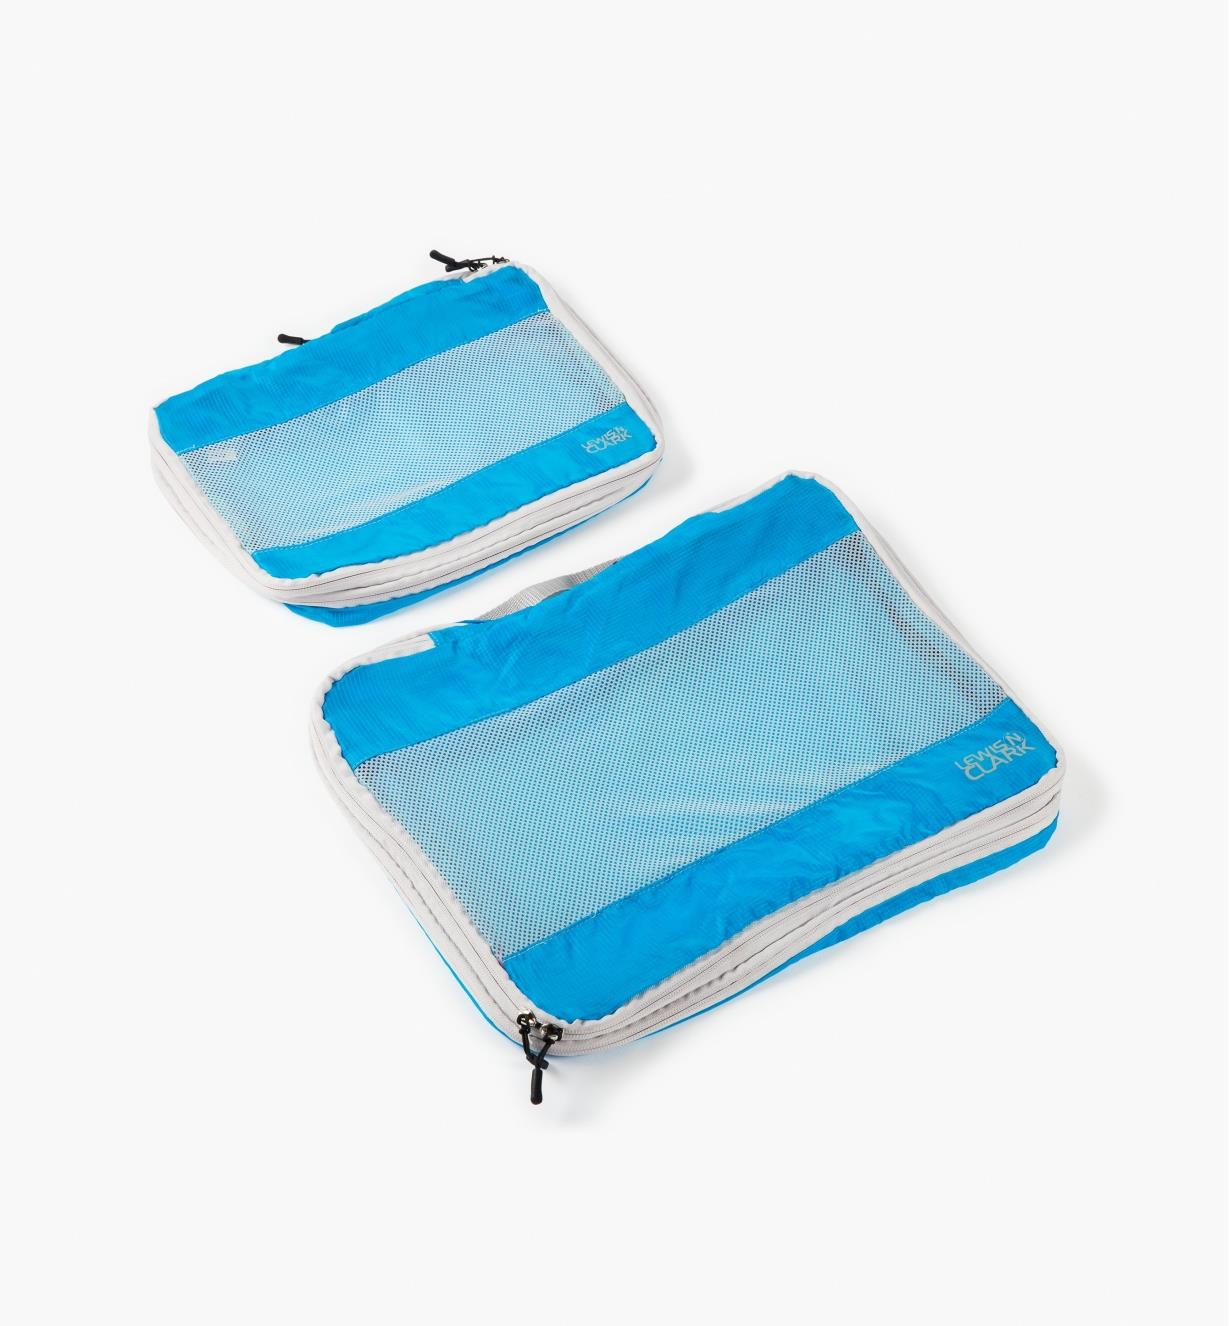 GB358 - Blue Expandable Packing Cubes, set of 2